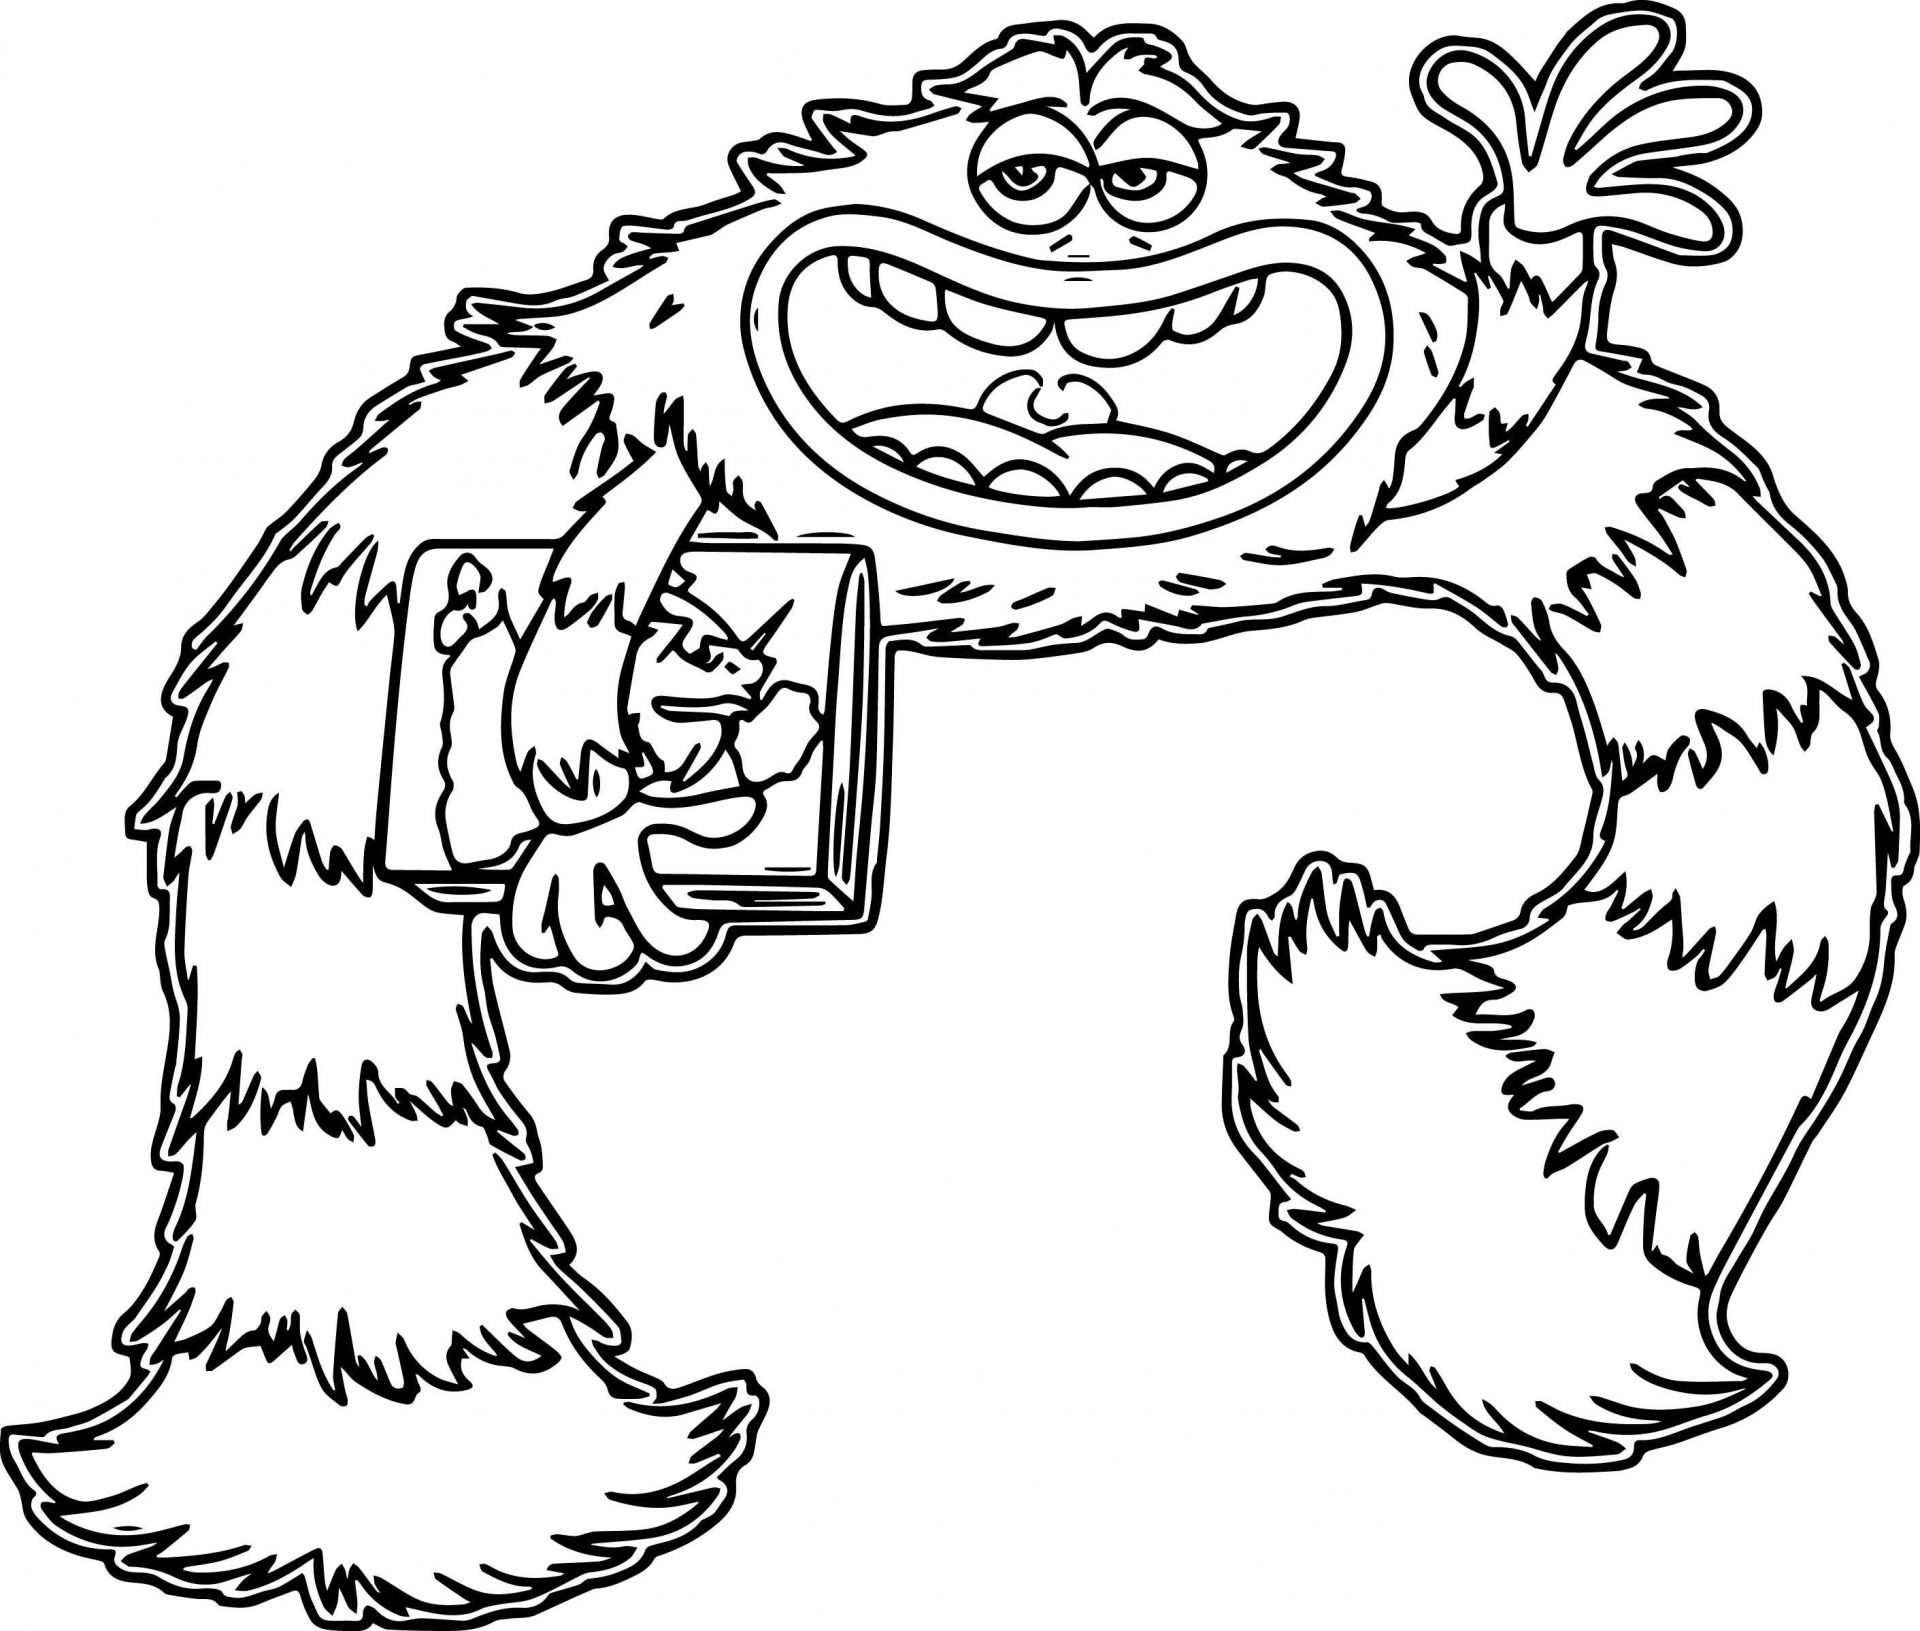 Monsters Inc Drawing   Free download best Monsters Inc Drawing on